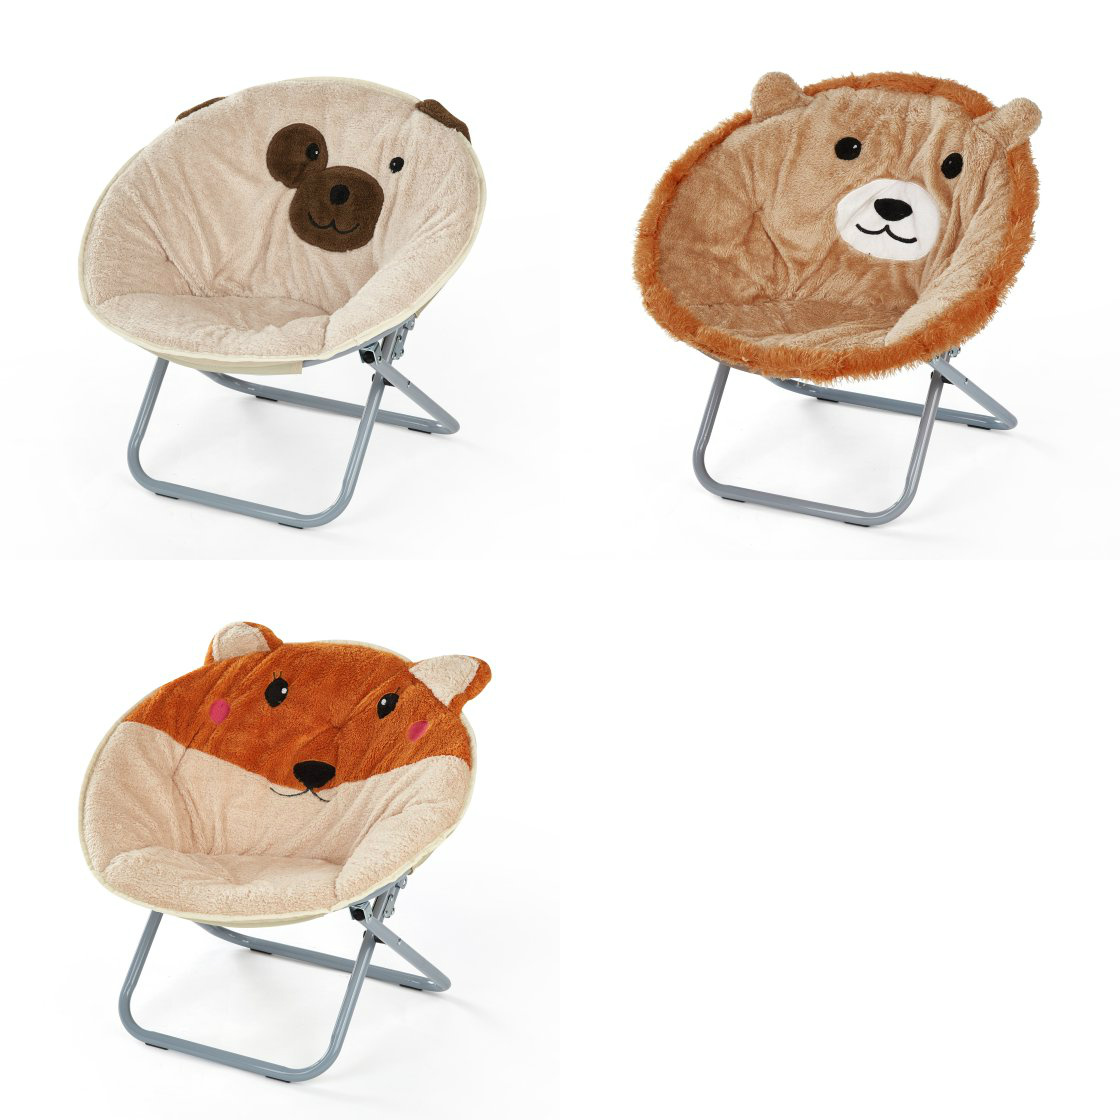 Whether You Are Studying, Hanging Out With Friends Or Just Lounging Around,  This Animal Saucer Chair Makes A Fun, Comfy Addition To Any Room.